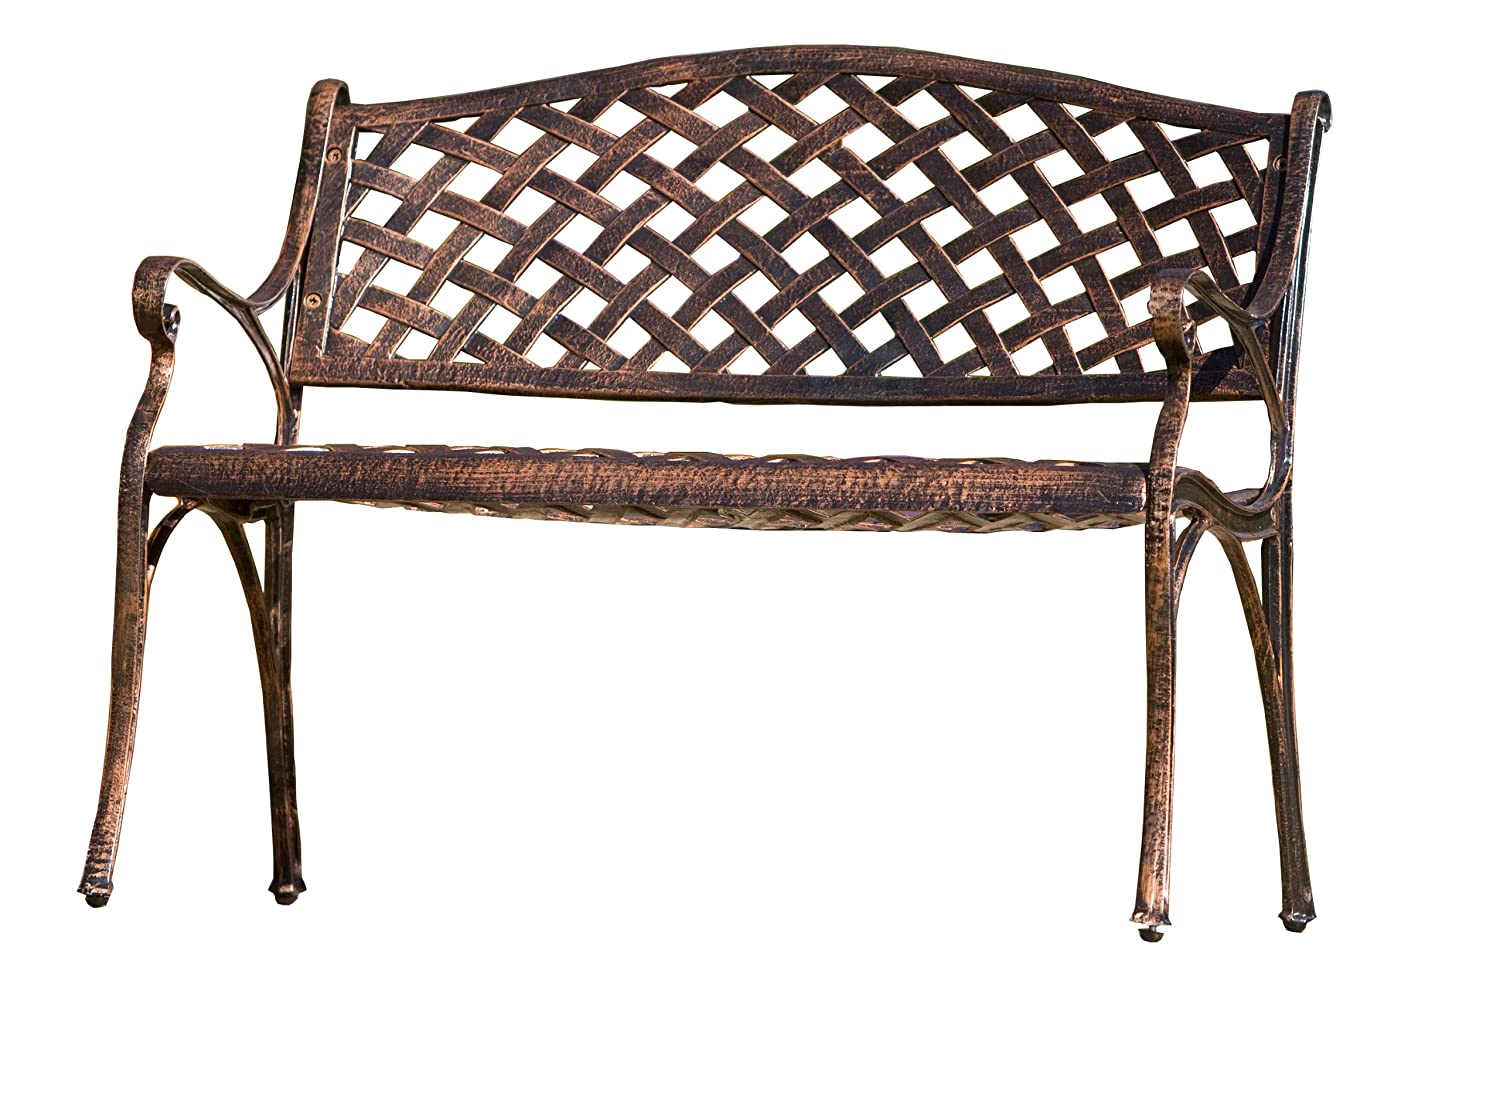 depot alternative the furniture metal bench n benches b lifetime glider wood home patio outdoors chairs outdoor